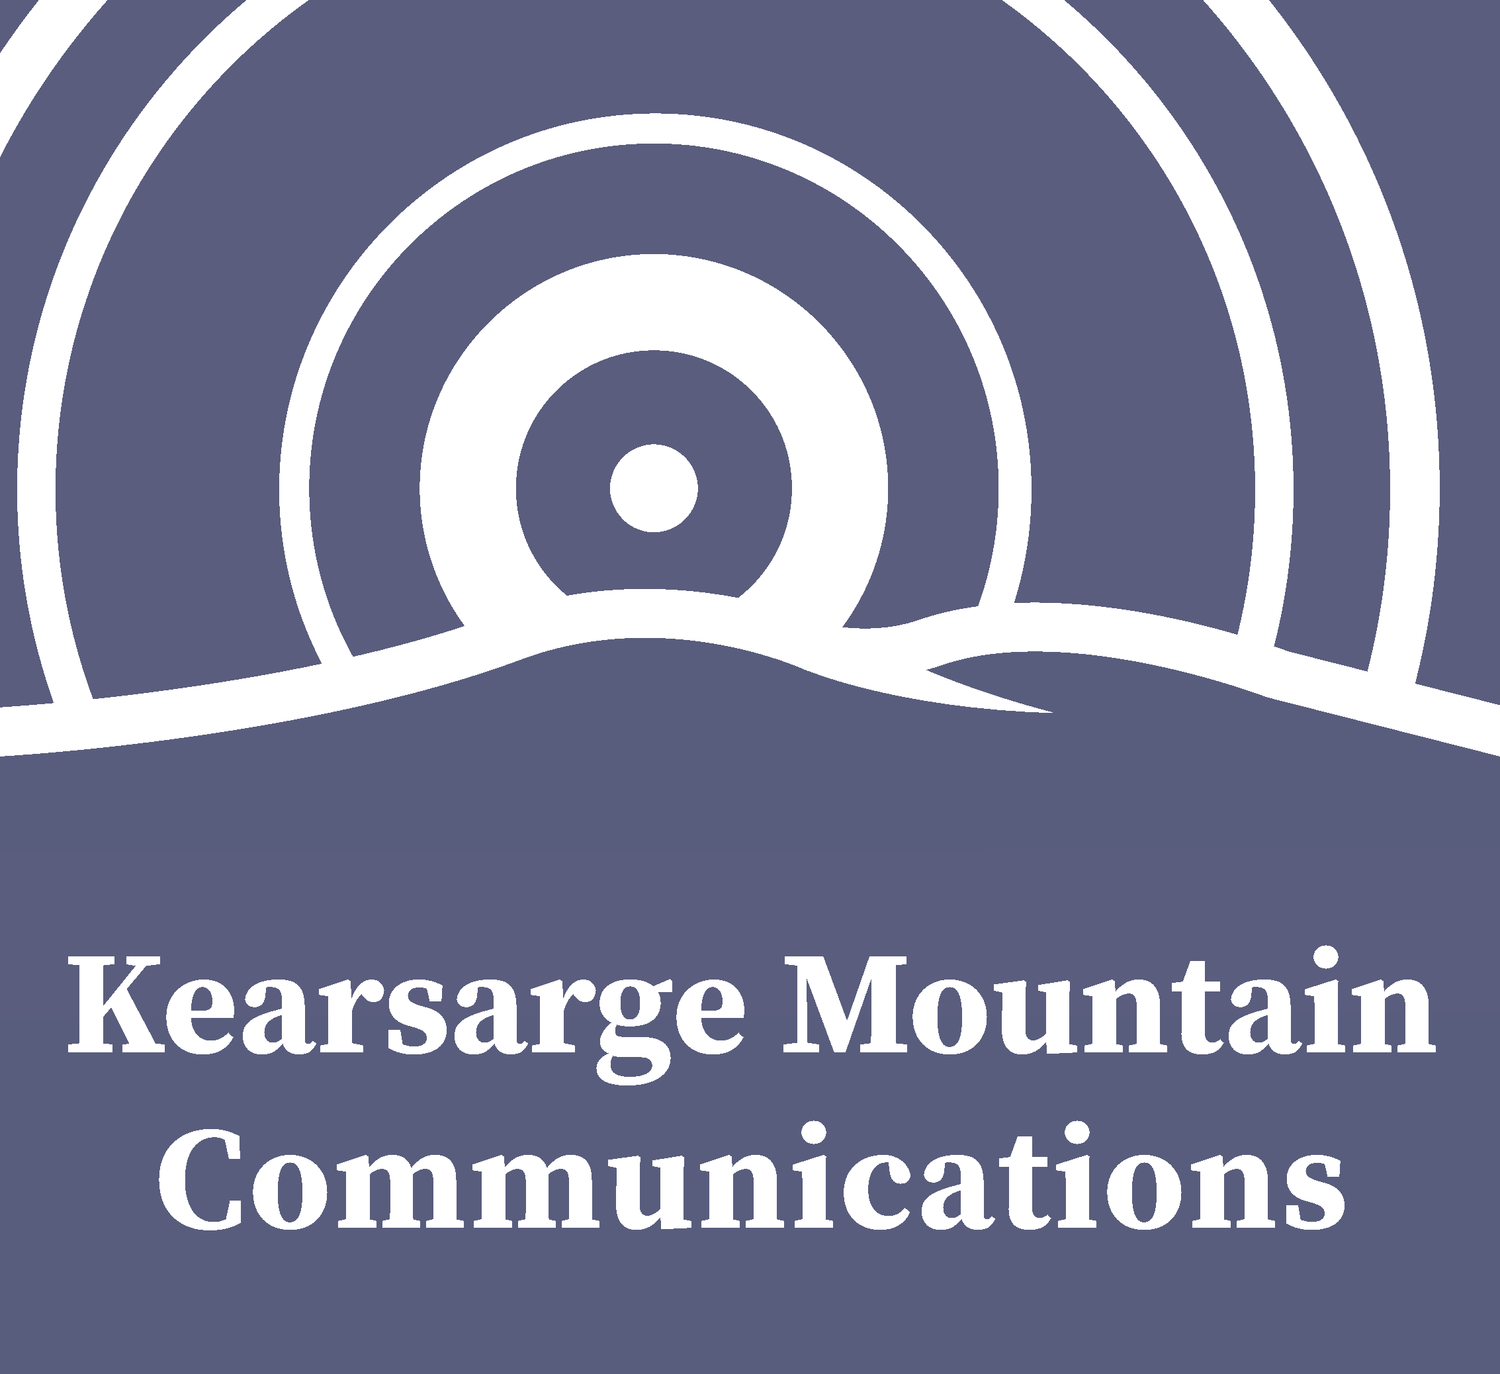 Kearsarge Mountain Communications